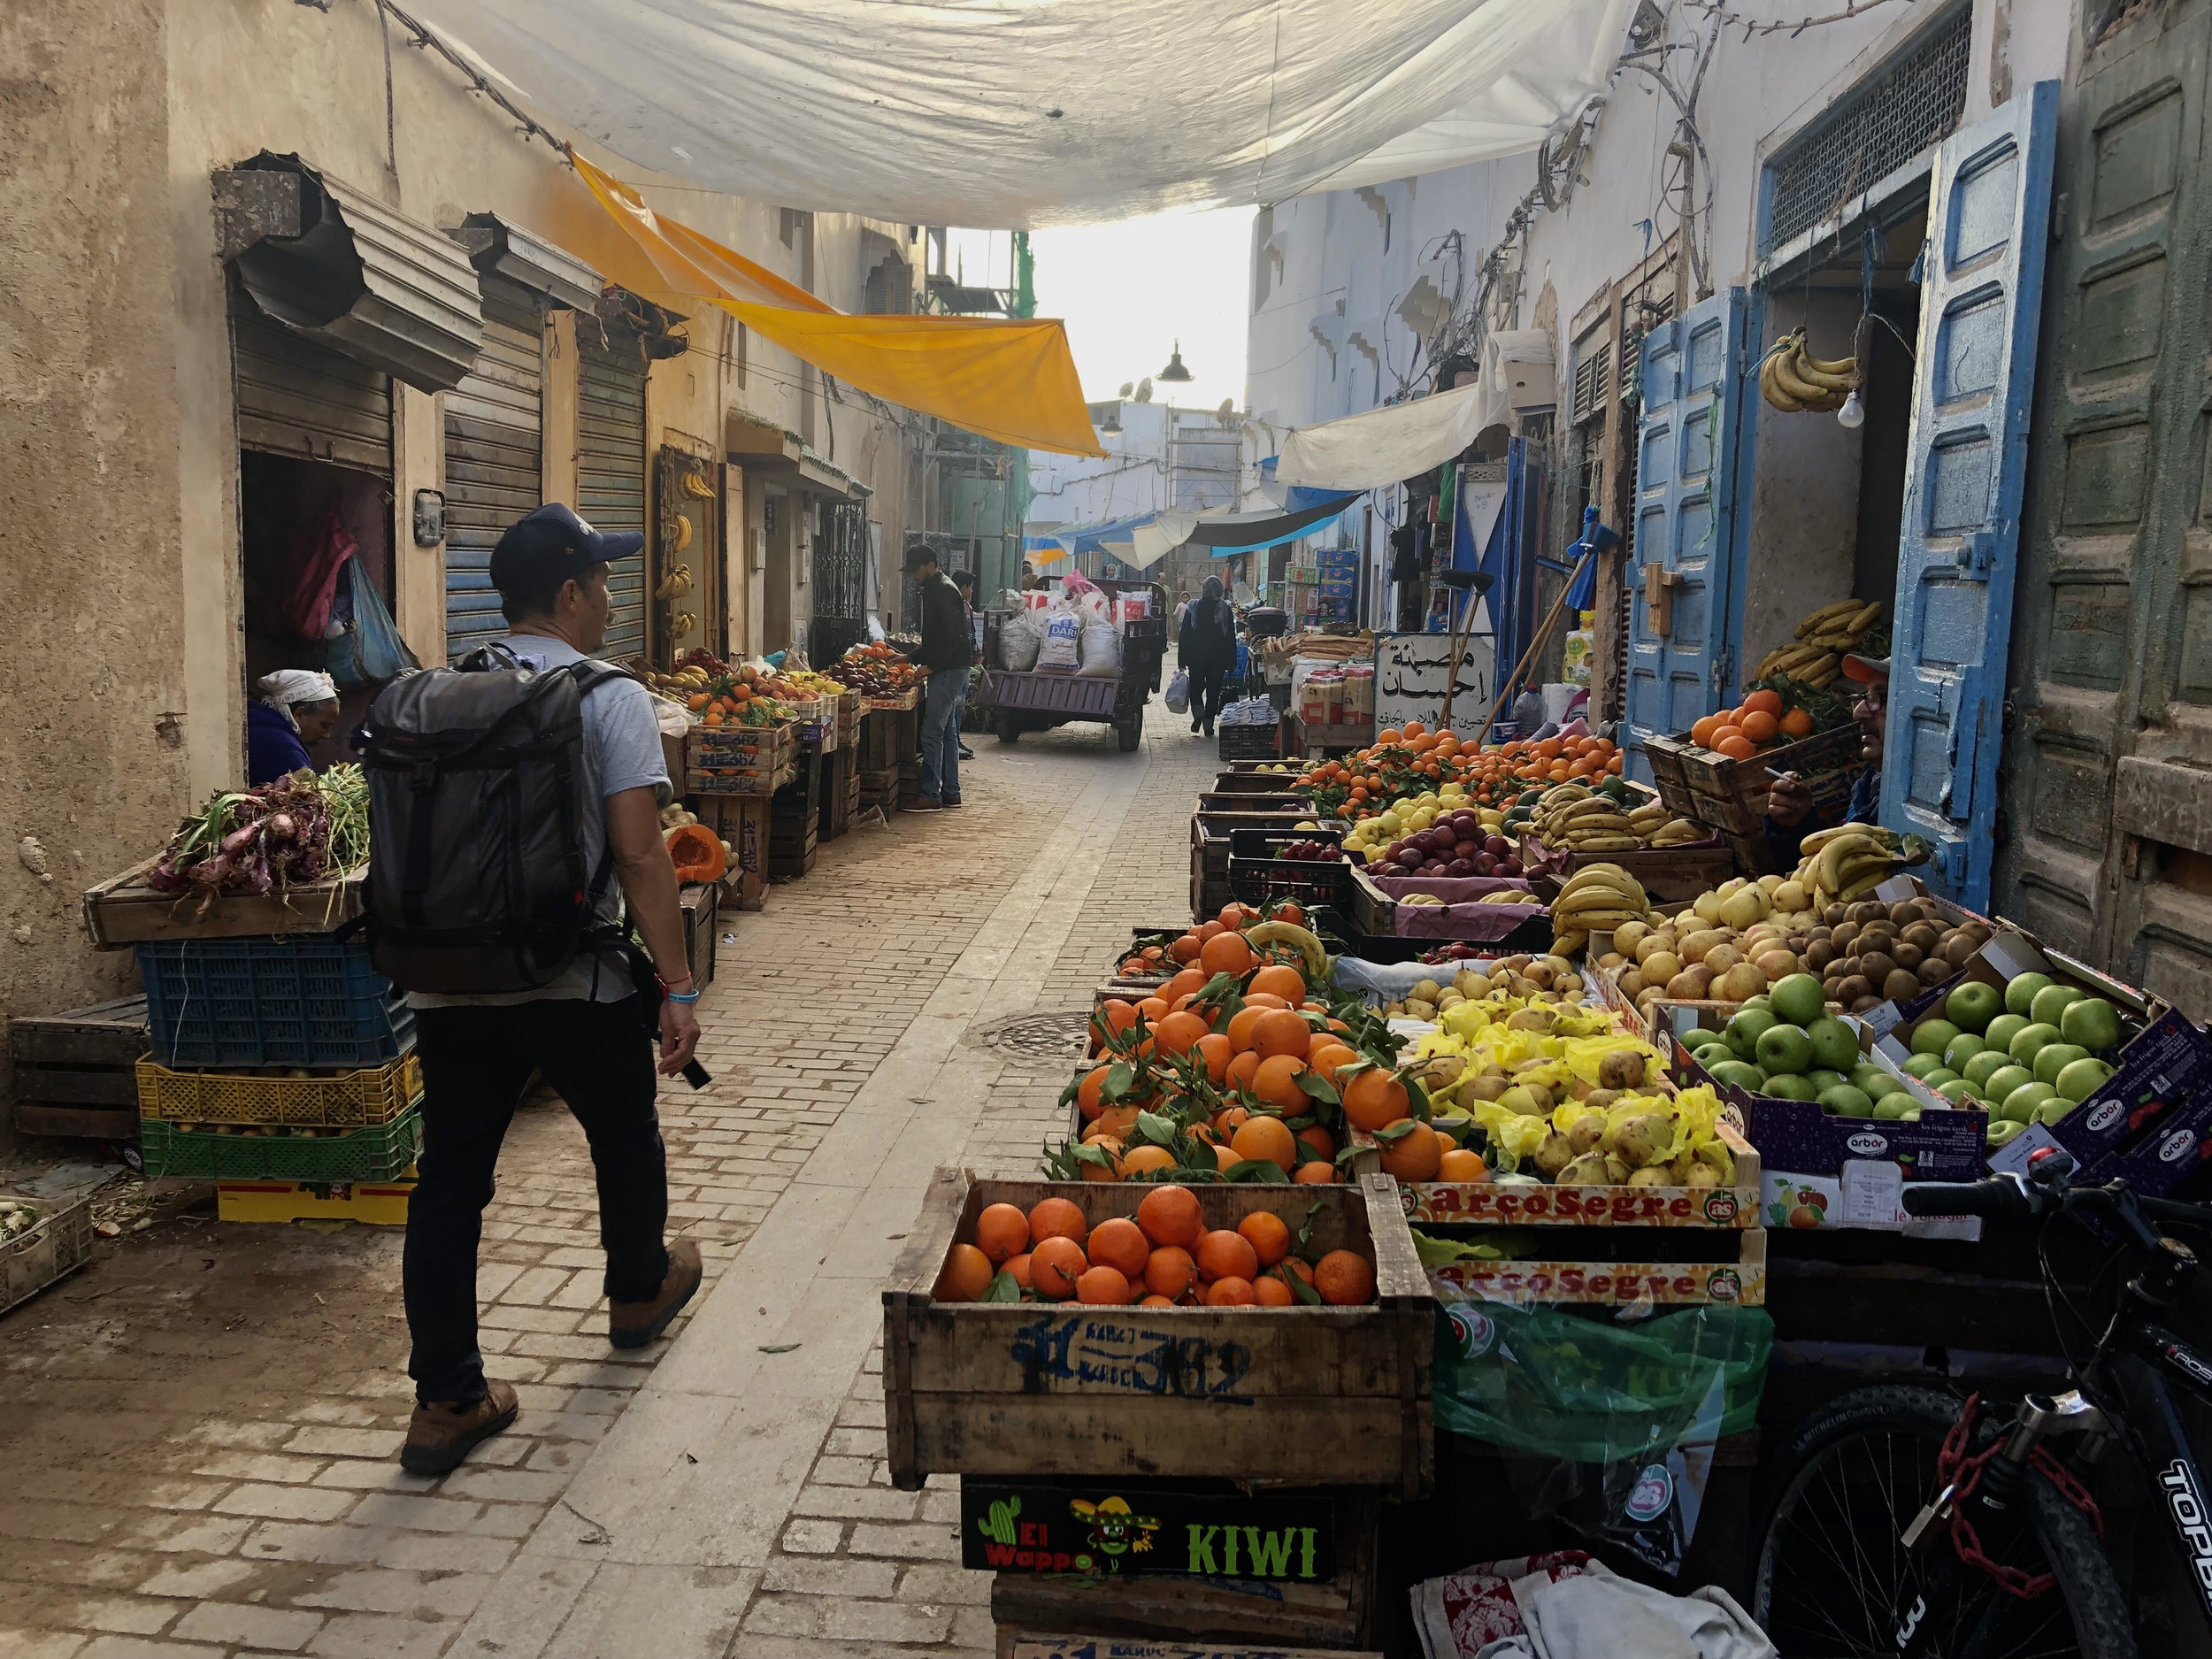 A vegetable street in the medina that we lived in.